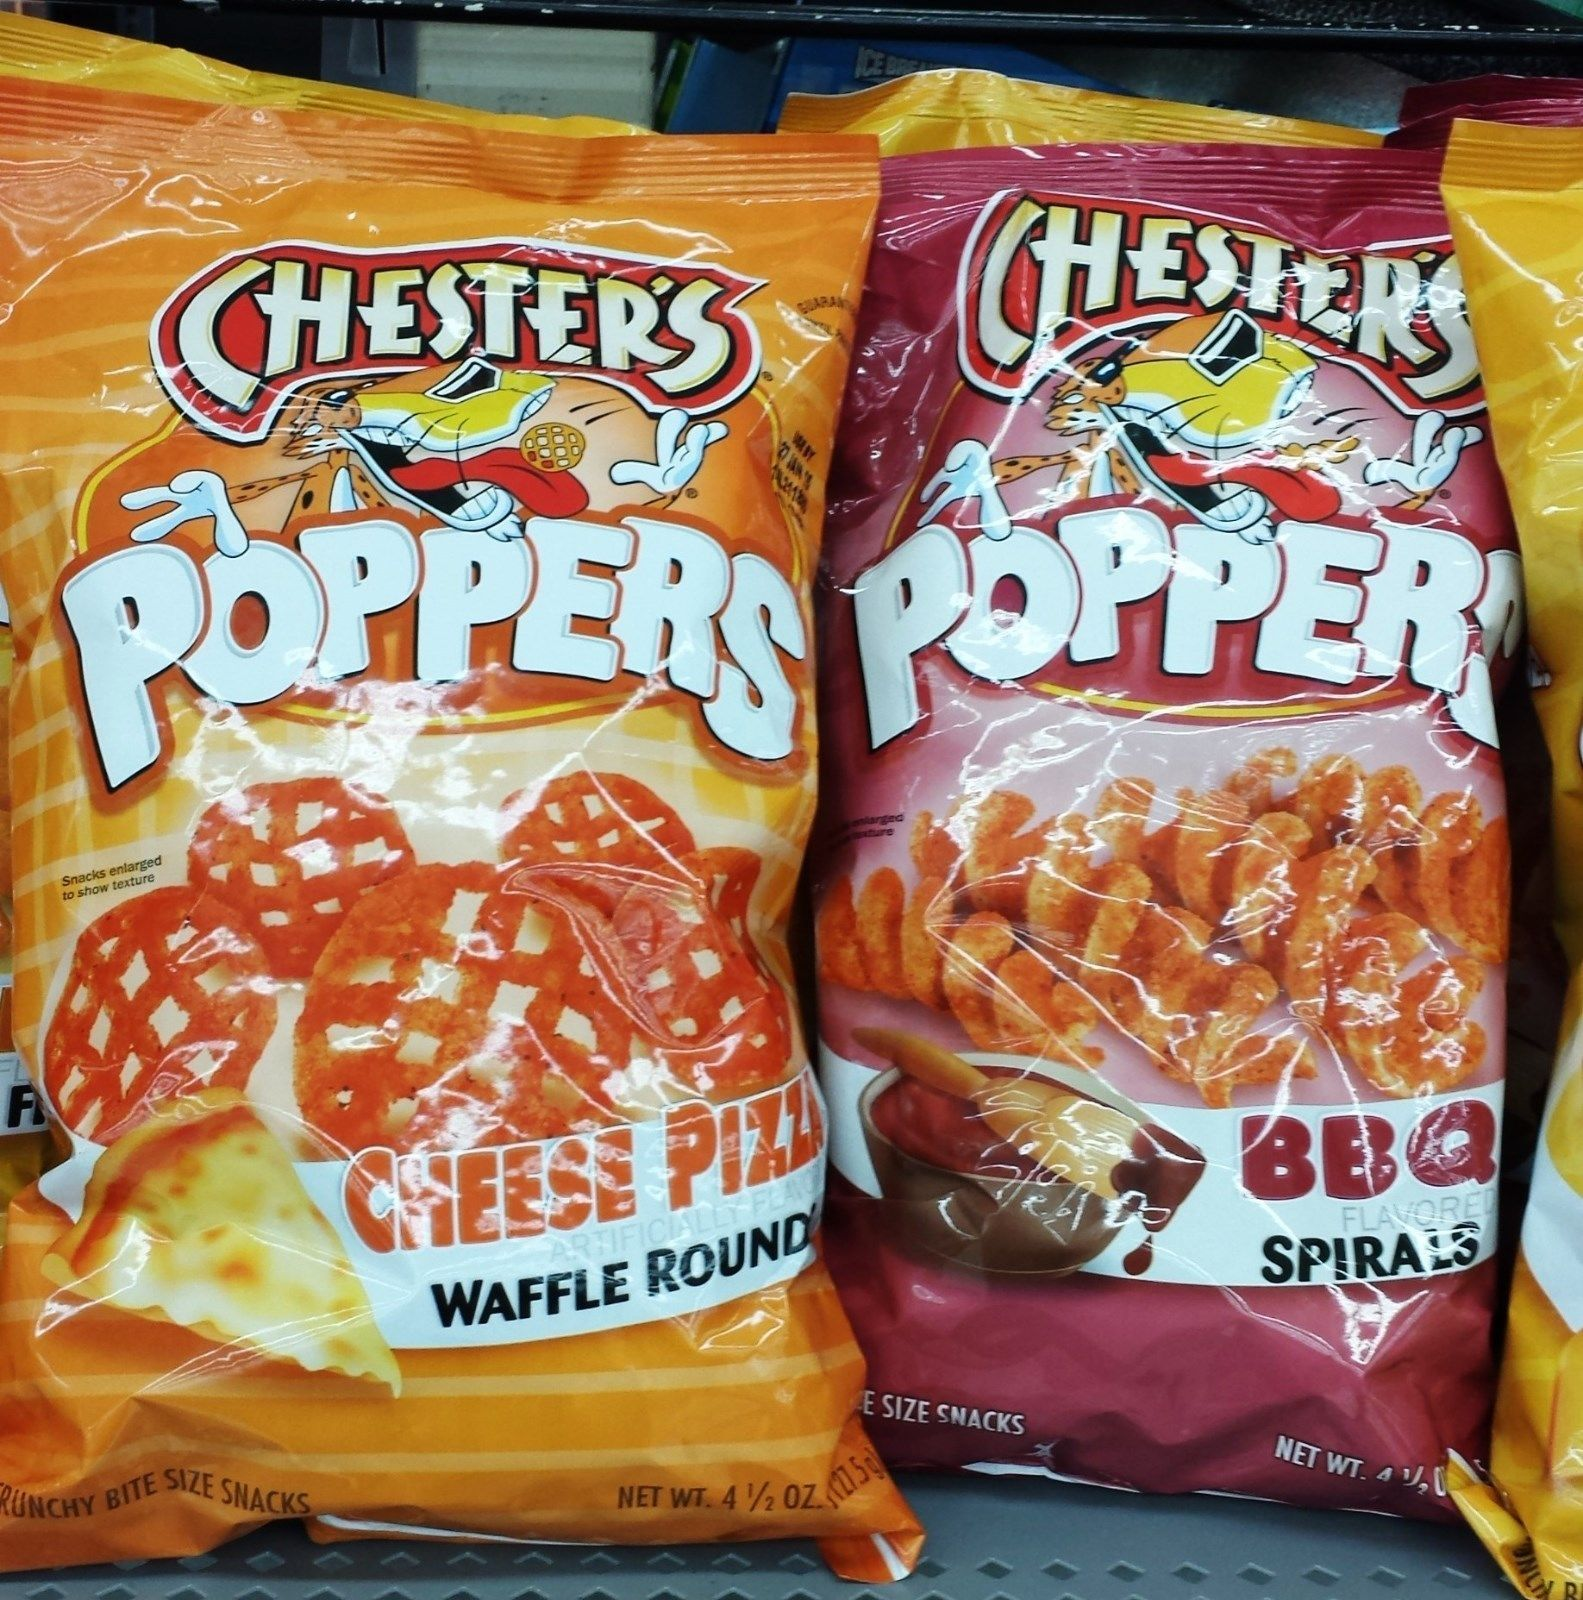 details about frito lay chester s poppers cheese crunchy bite size frito lay chester s poppers cheese crunchy bite size snacks pick one